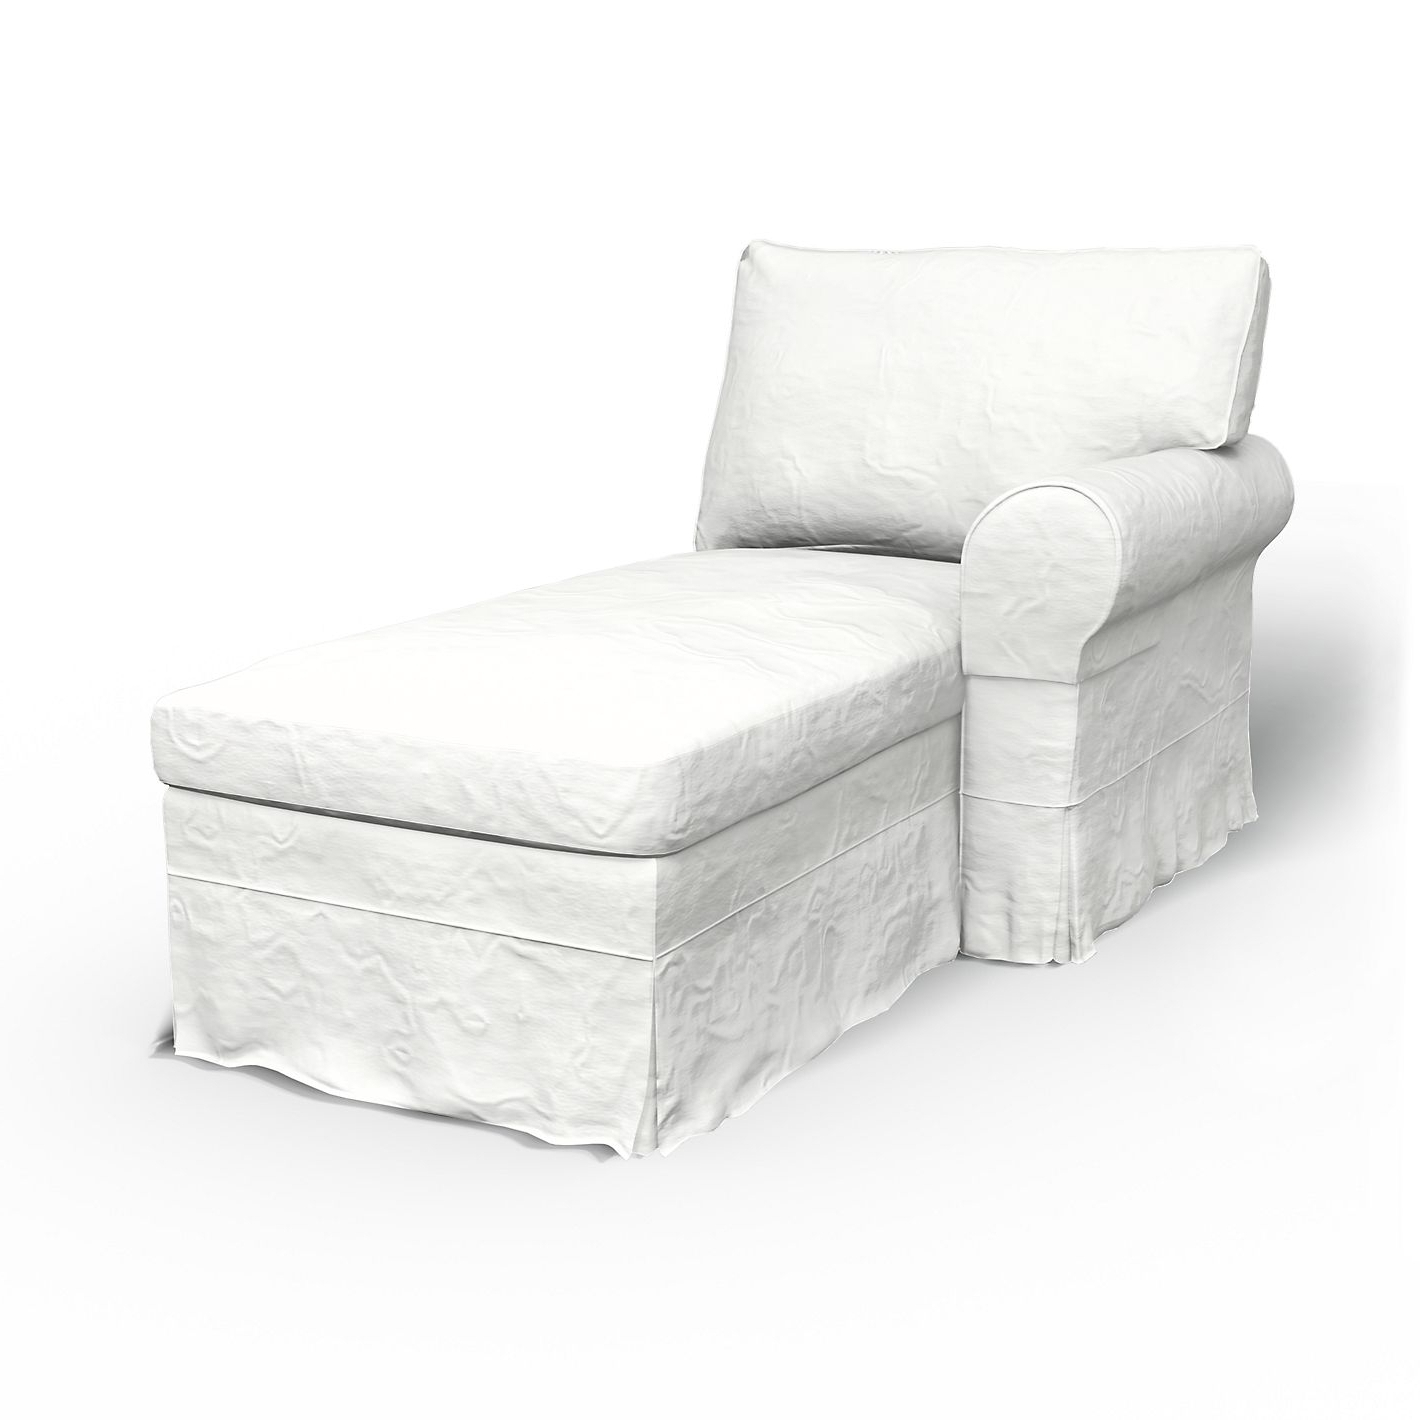 Slipcovesr For Chaise Lounge In Well Liked Cover For Chaise Lounge Chair • Lounge Chairs Ideas (View 6 of 15)